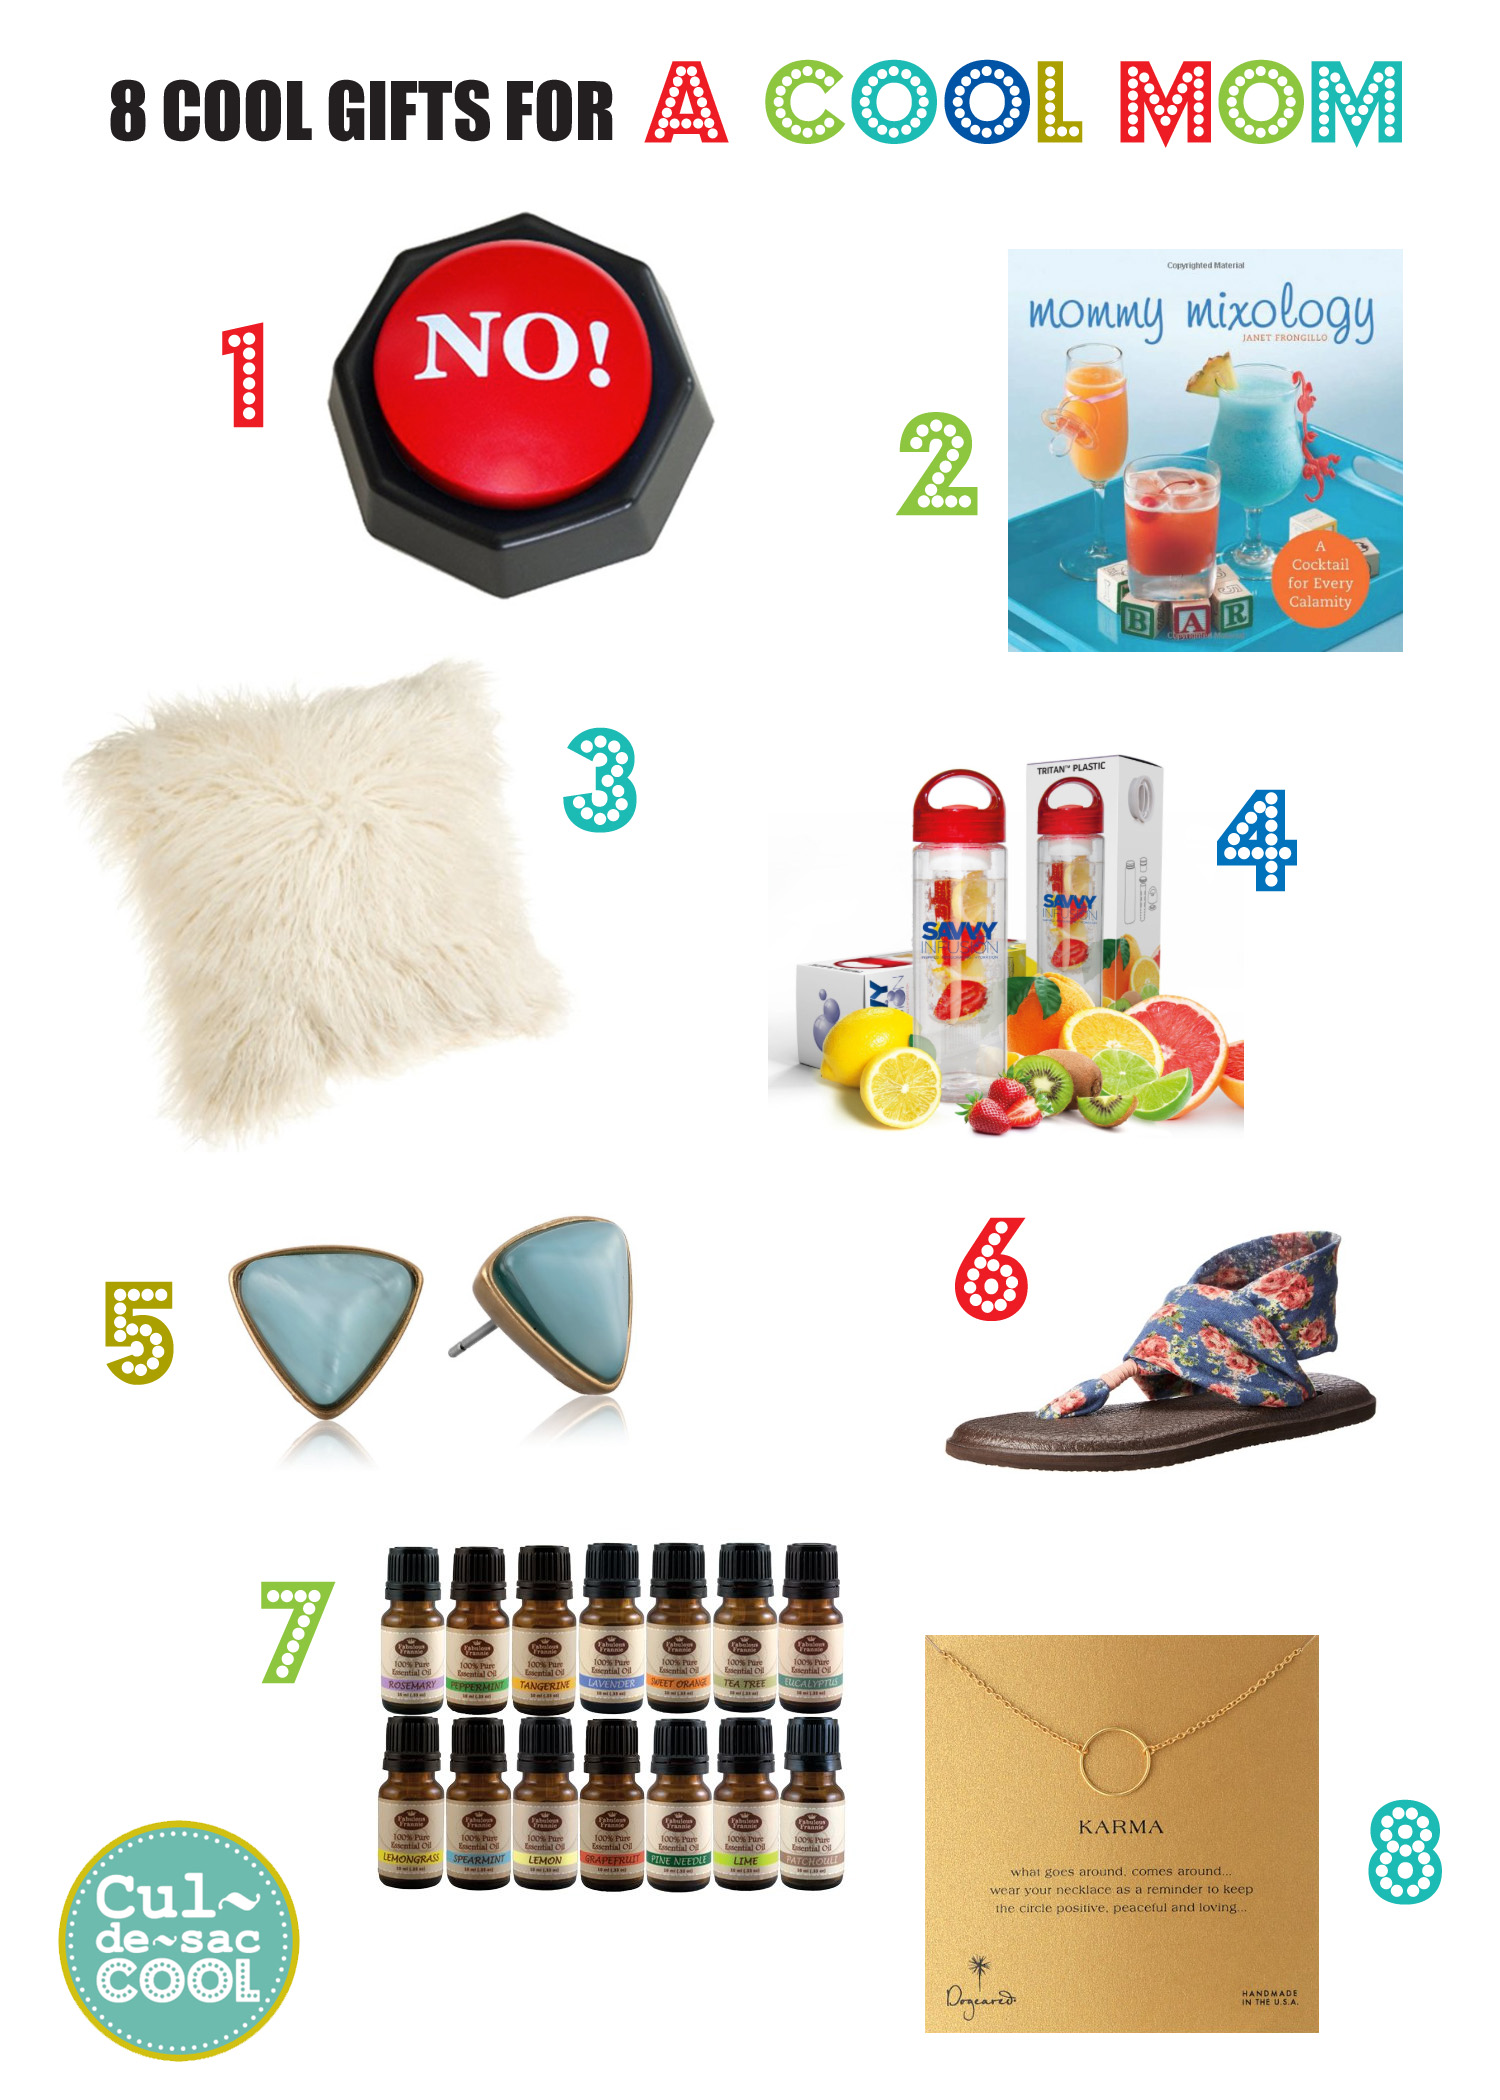 8 COOL GIFTS FOR COOL MOM